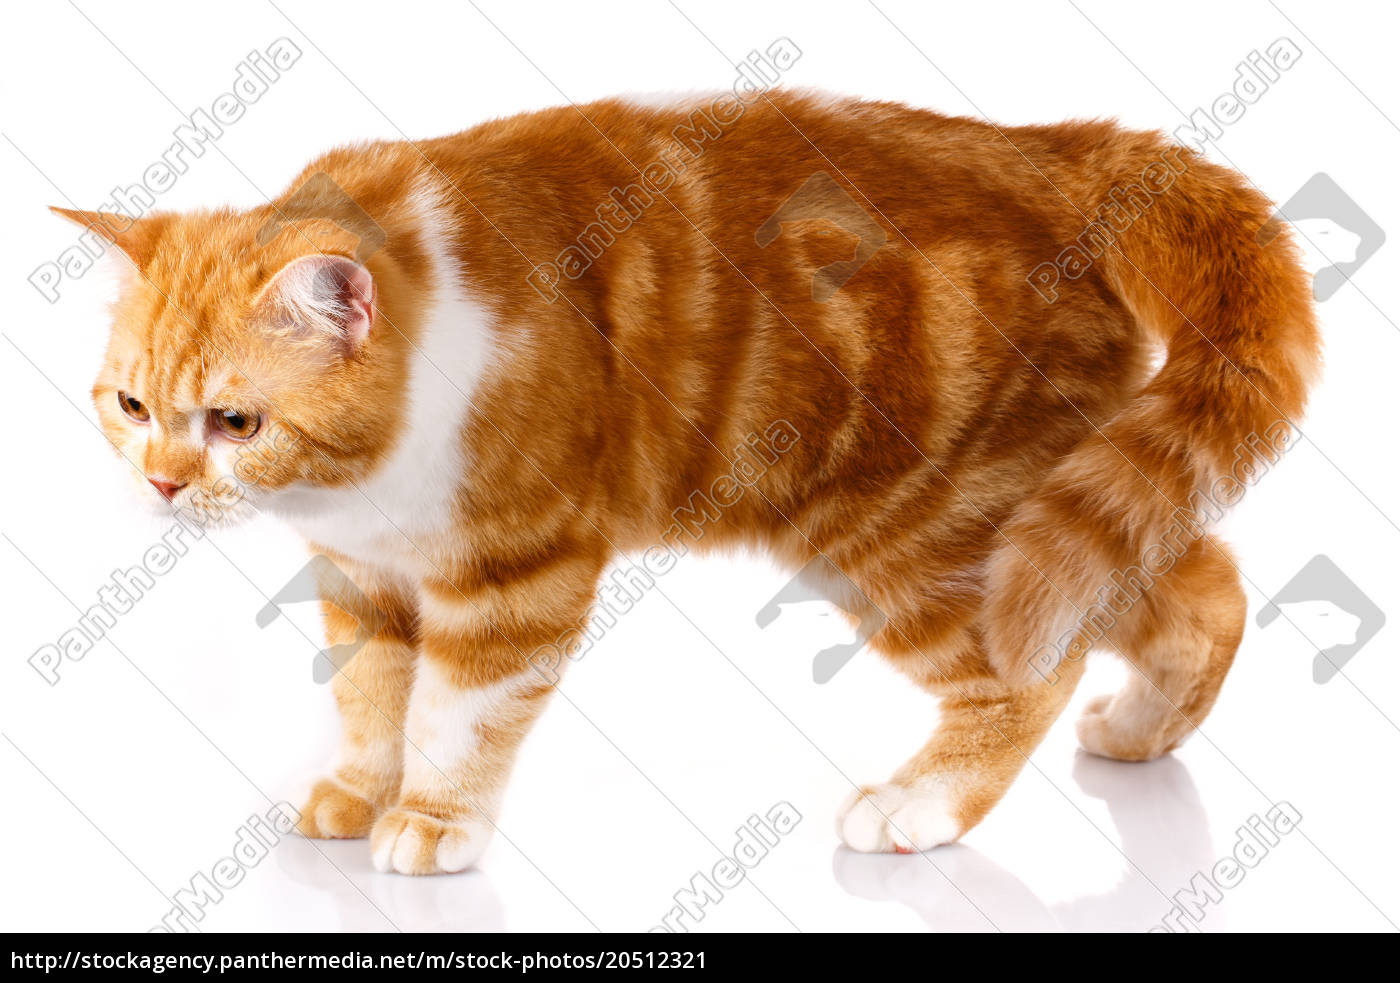 red-haired, cat, standing, on, white, background - 20512321